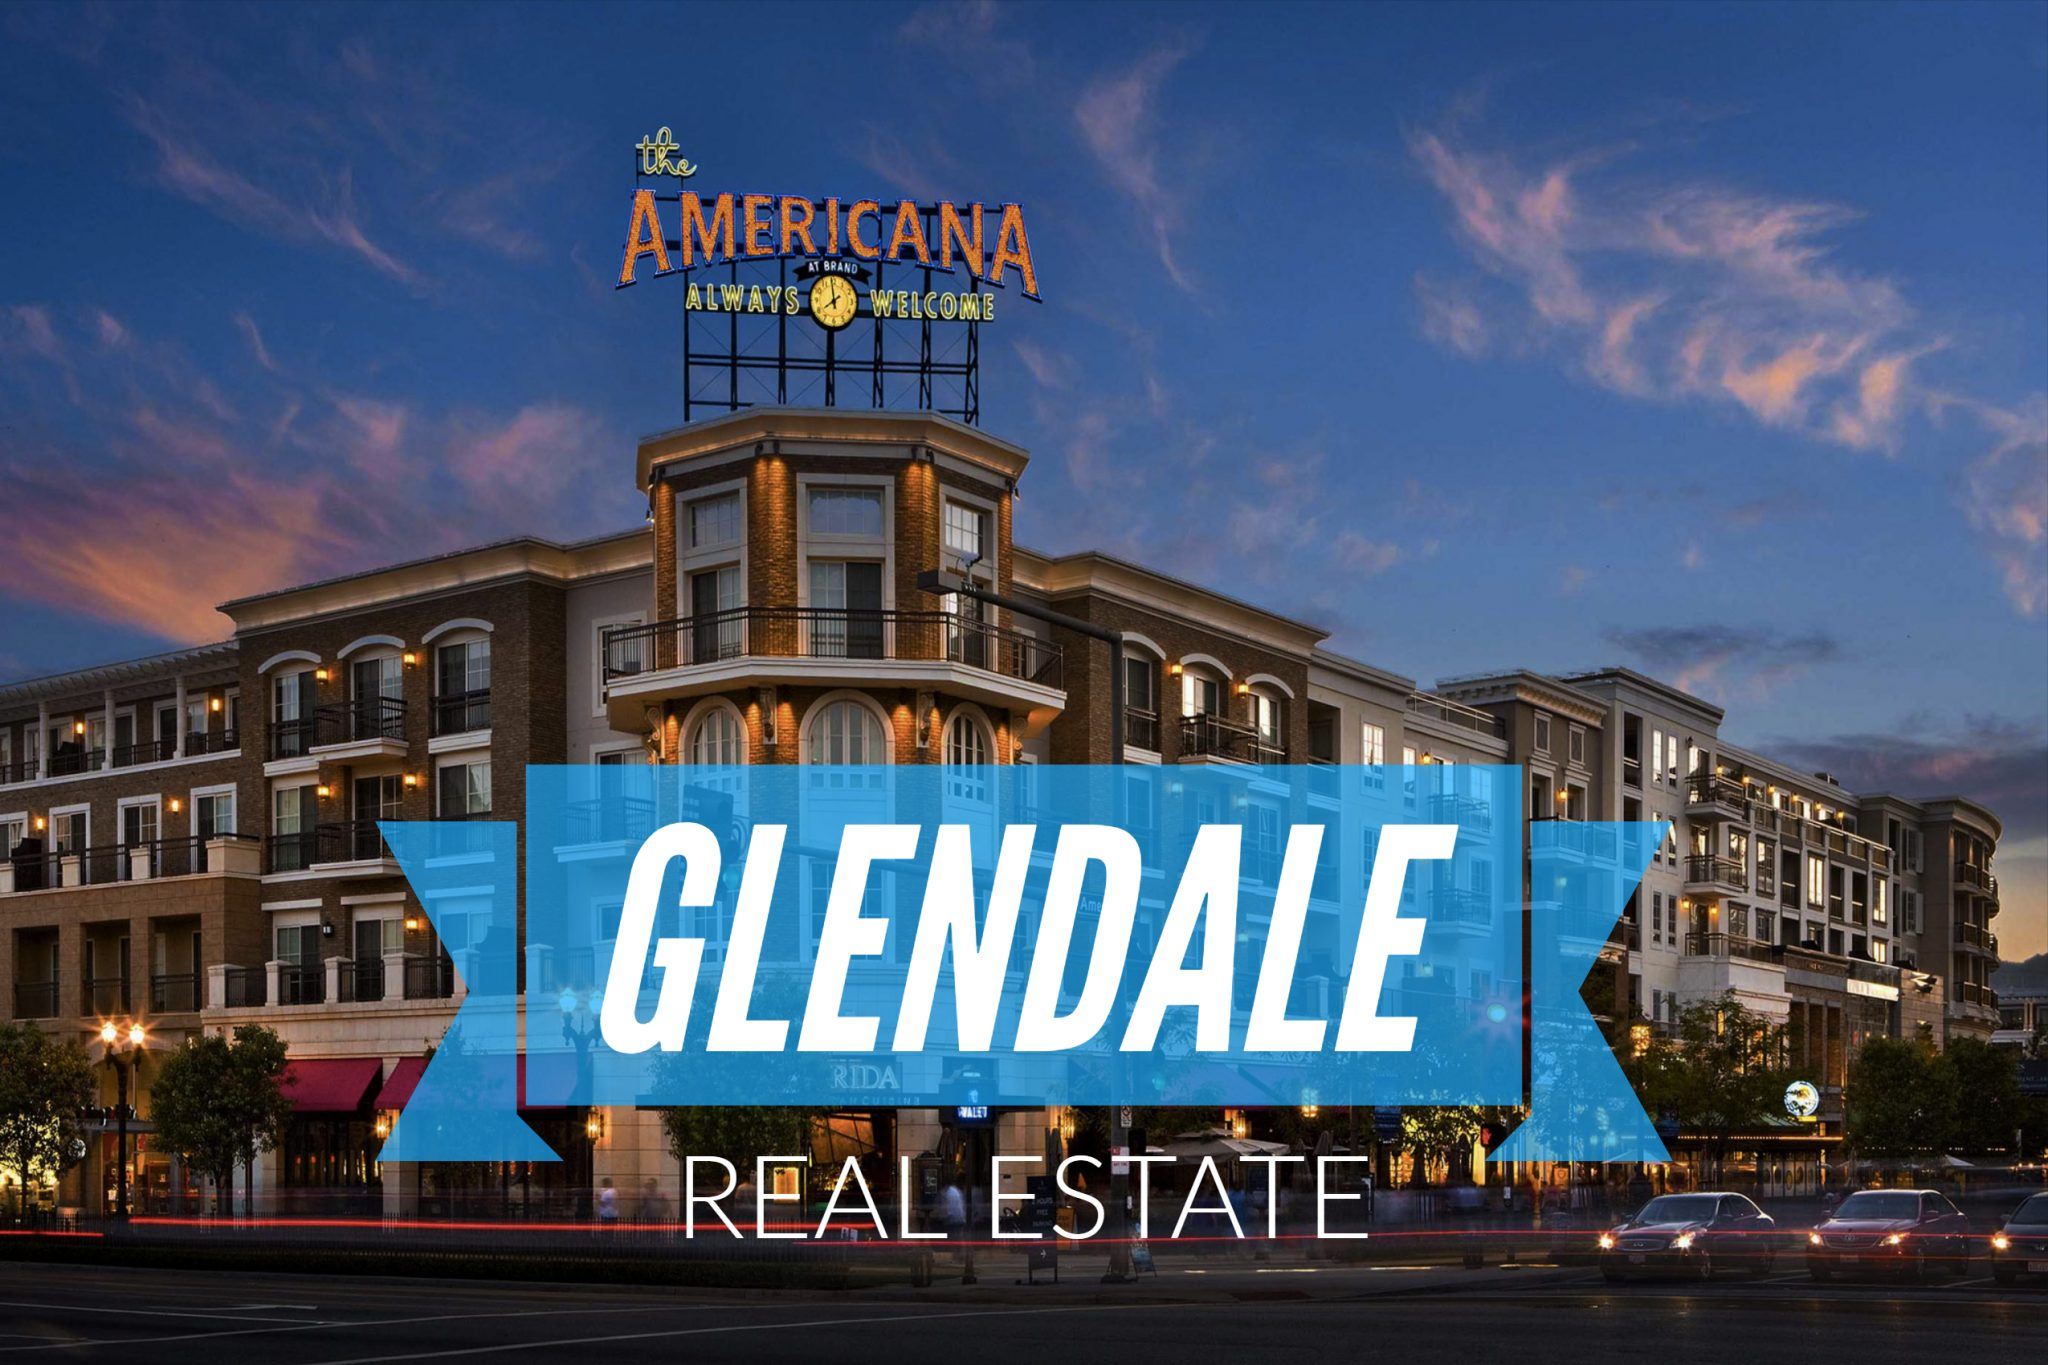 glendale-real-estate-glendale-real-estate-agent-glendale-realtor